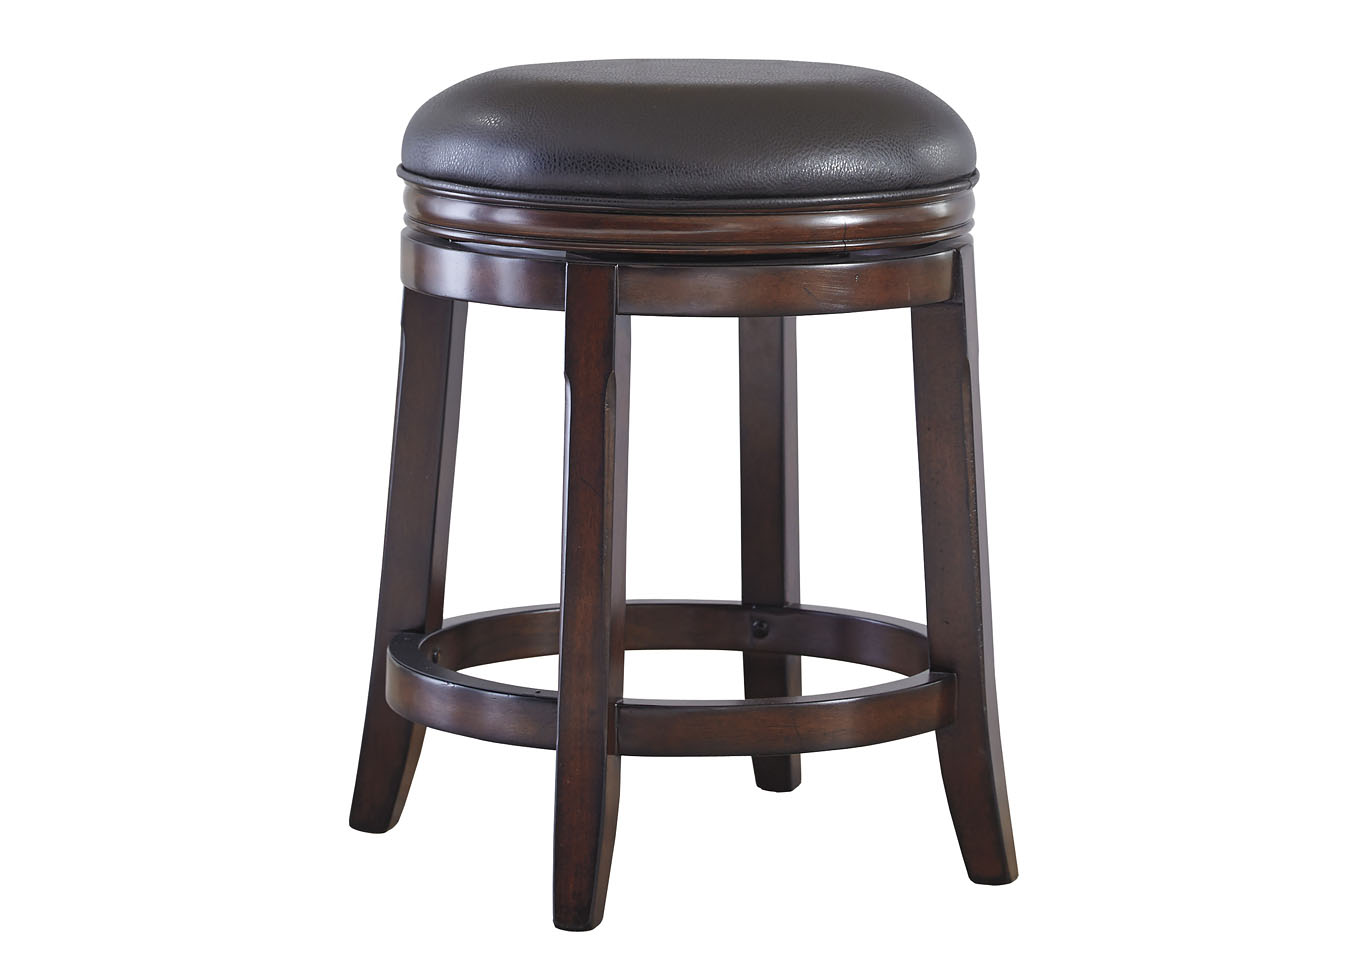 Porter Rustic Brown Upholstered Swivel Stool (Set of 2),ABF Millennium